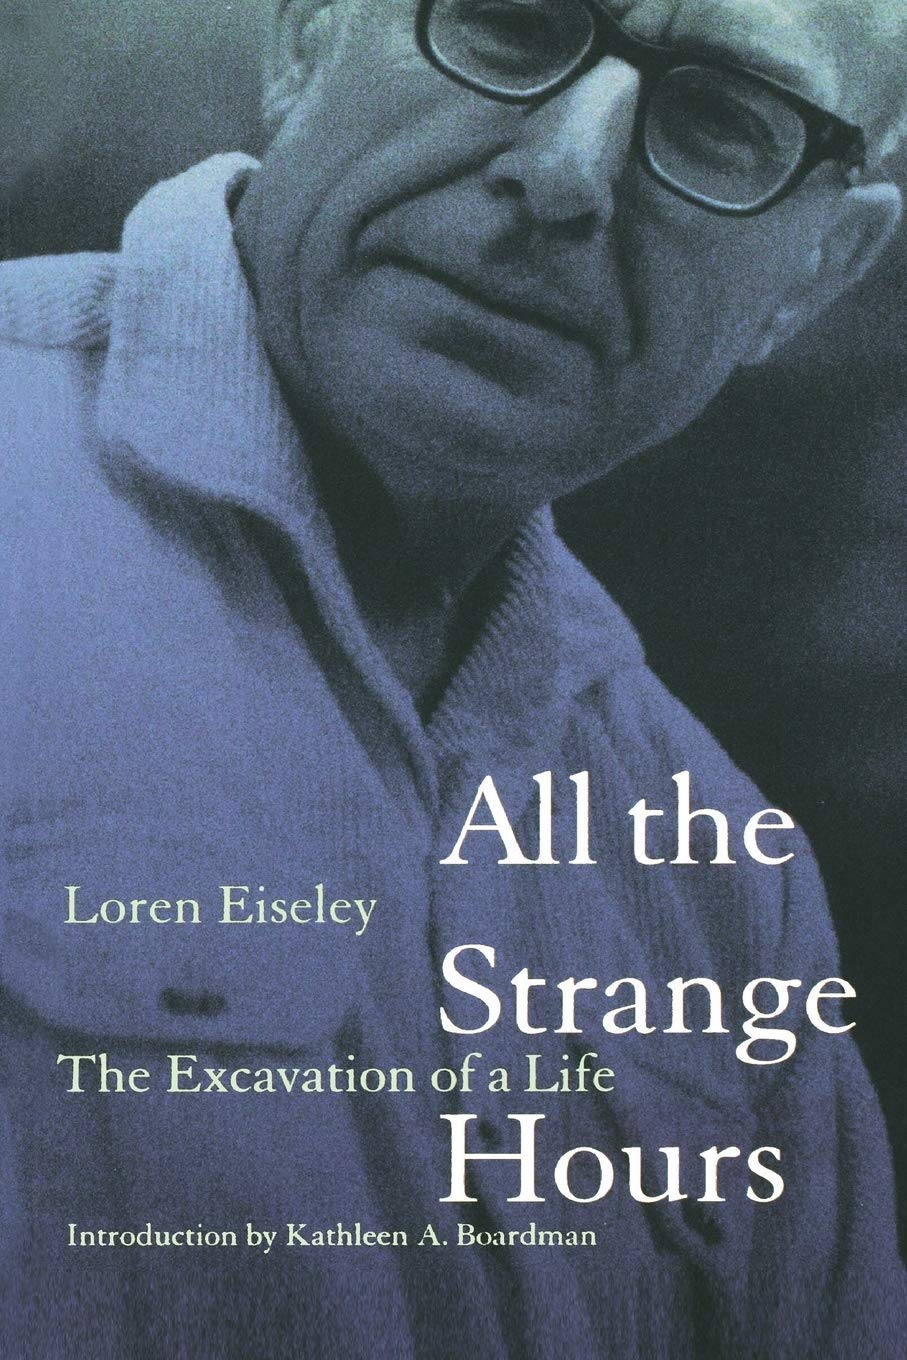 Read All The Strange Hours The Excavation Of A Life By Loren Eiseley